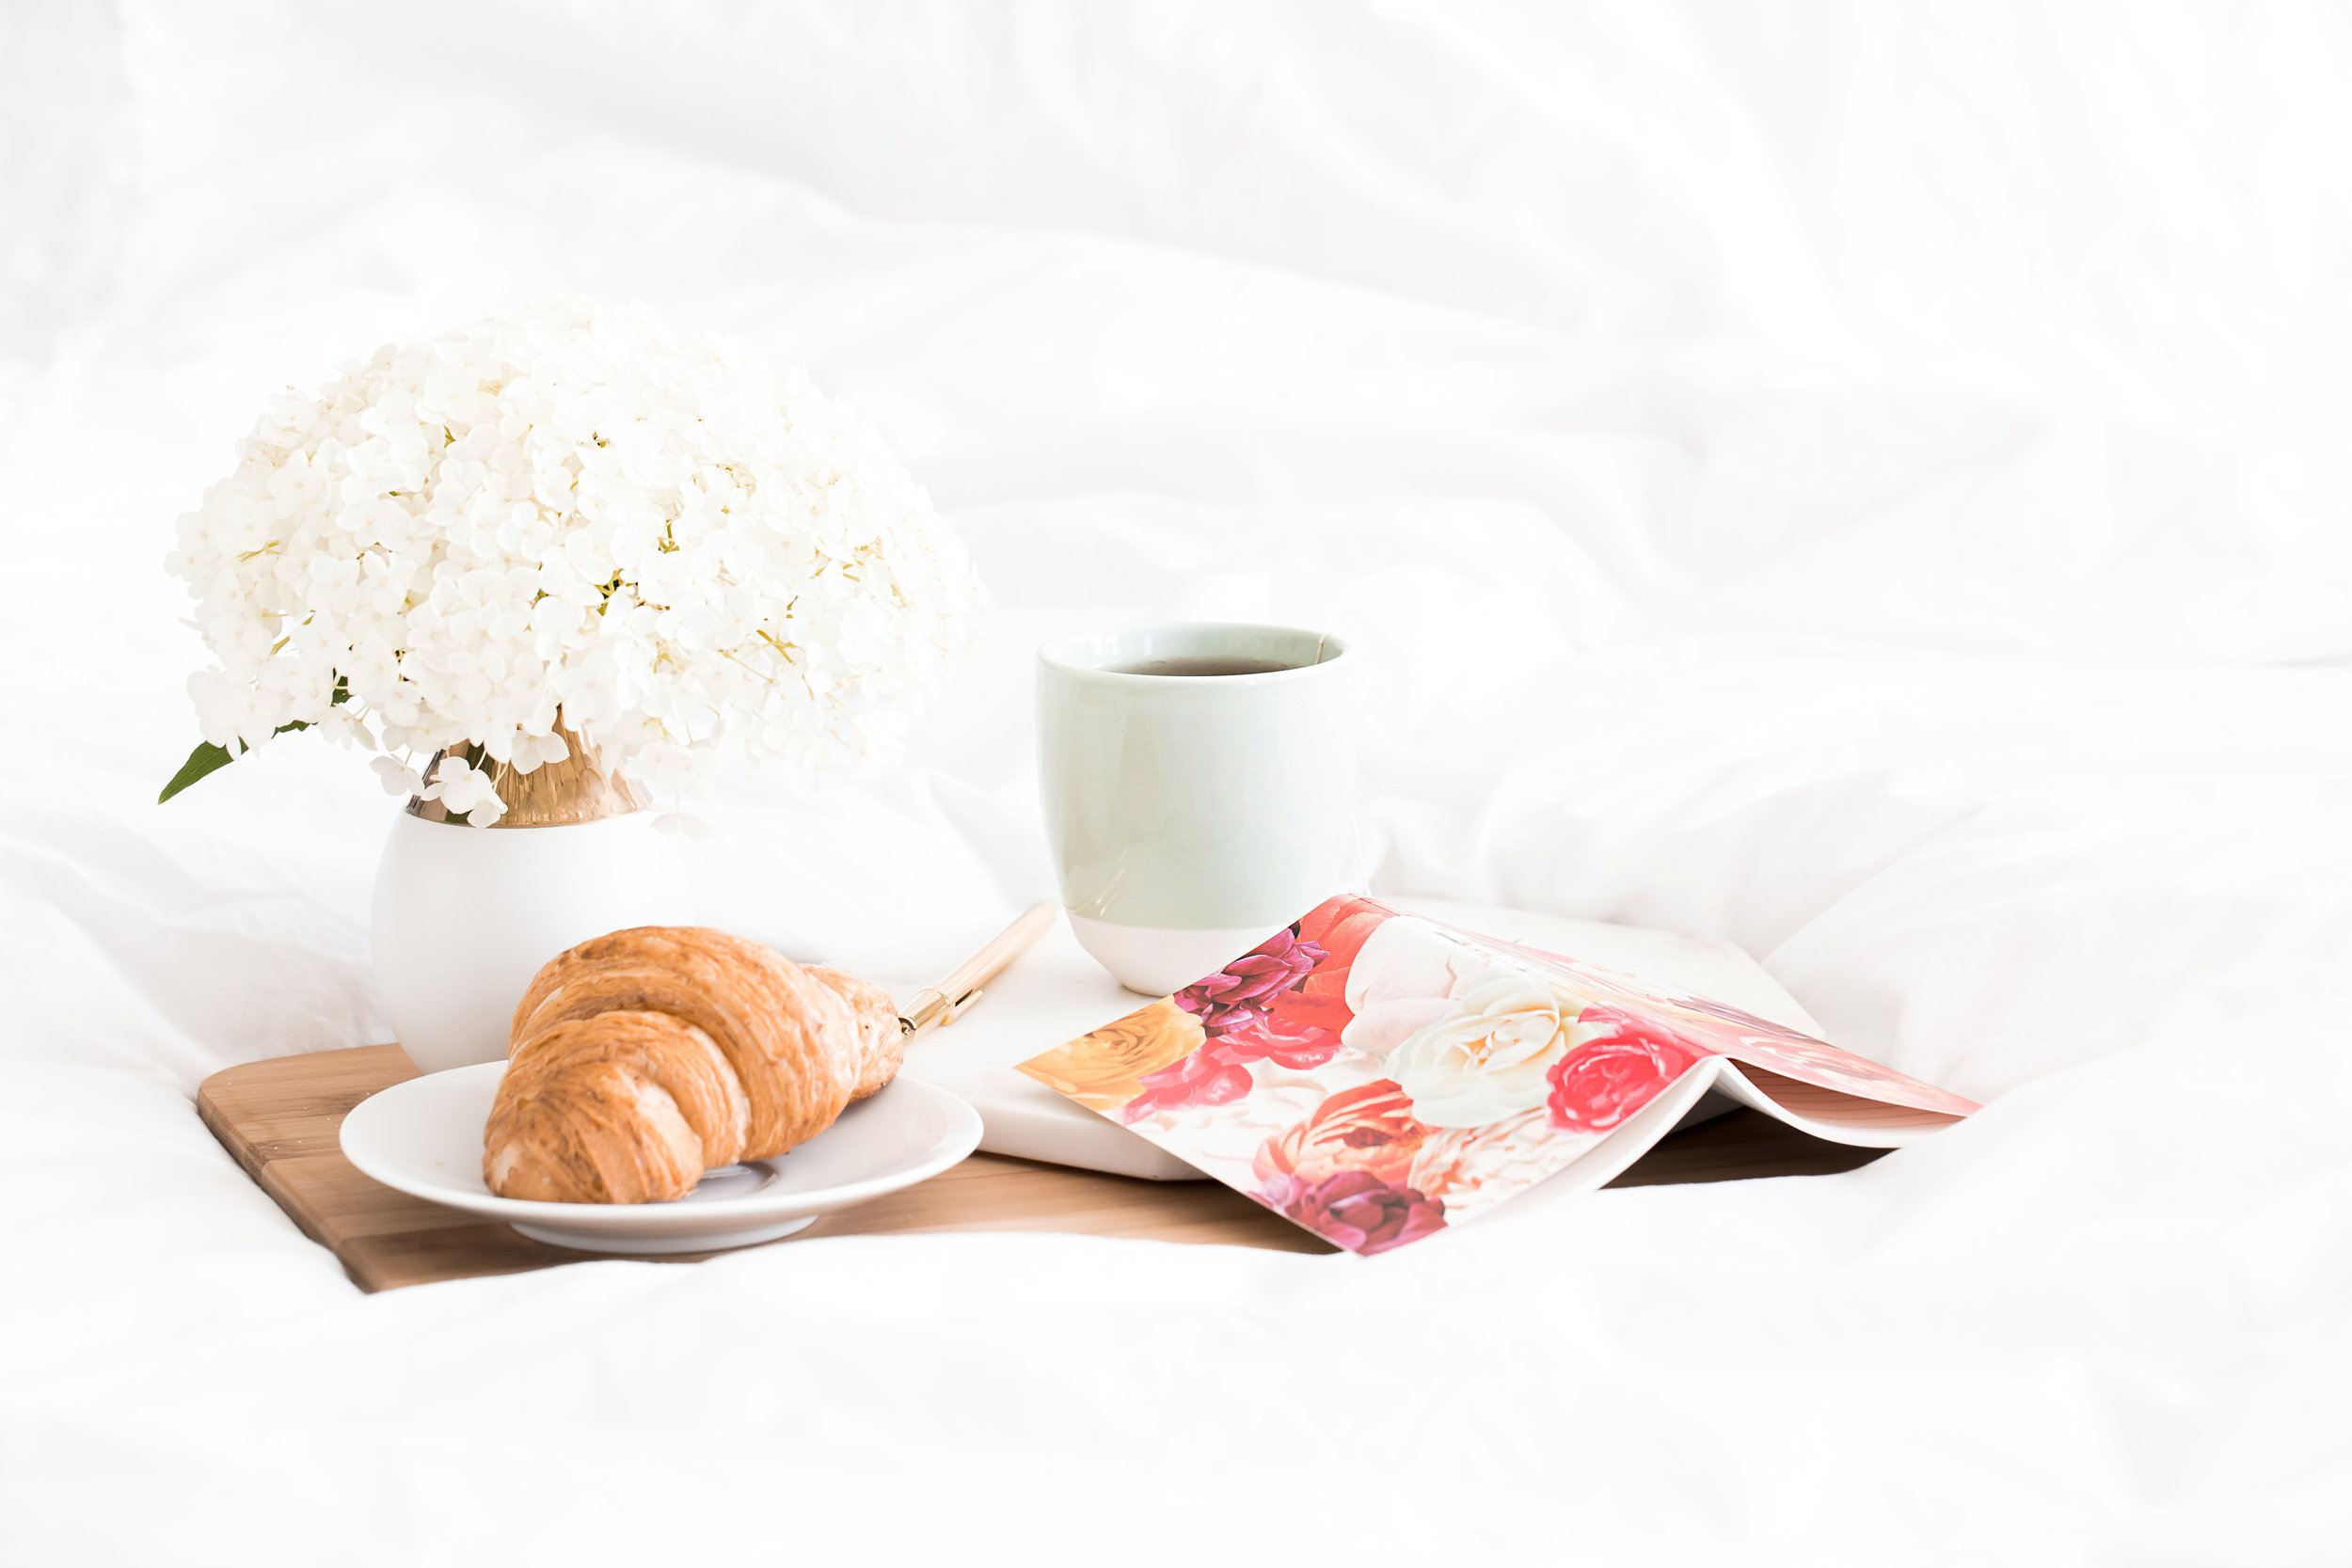 haute-chocolate-styled-stock-photography-breakfast-in-bed-11-final.jpg